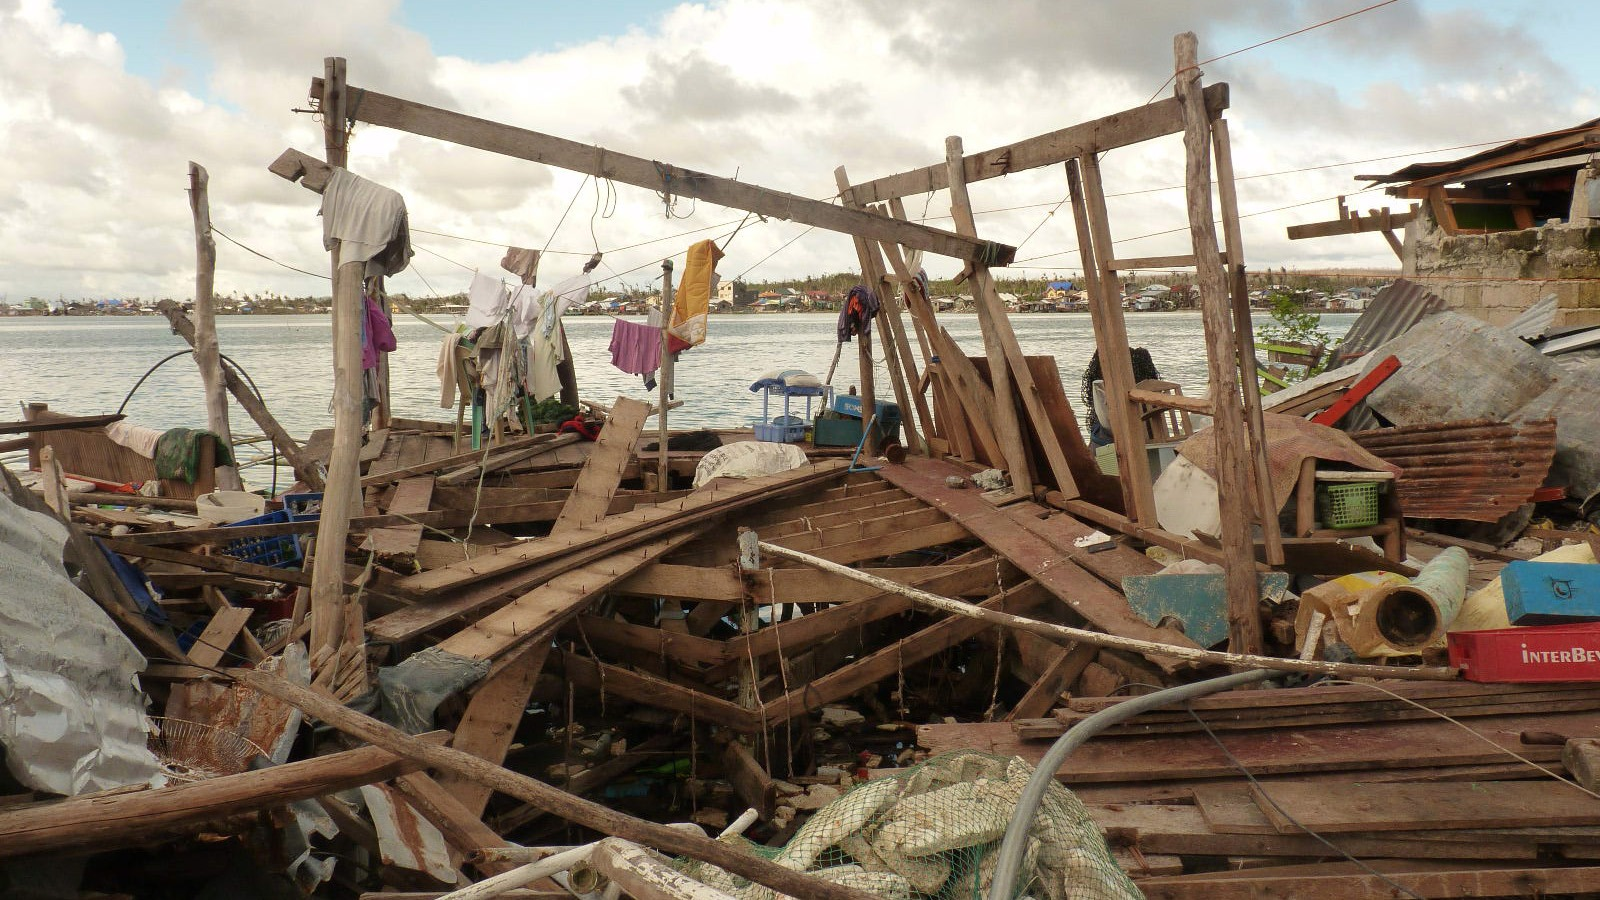 Wreckage from typhoon Haiyan (Yolanda) in the Philippines prompted